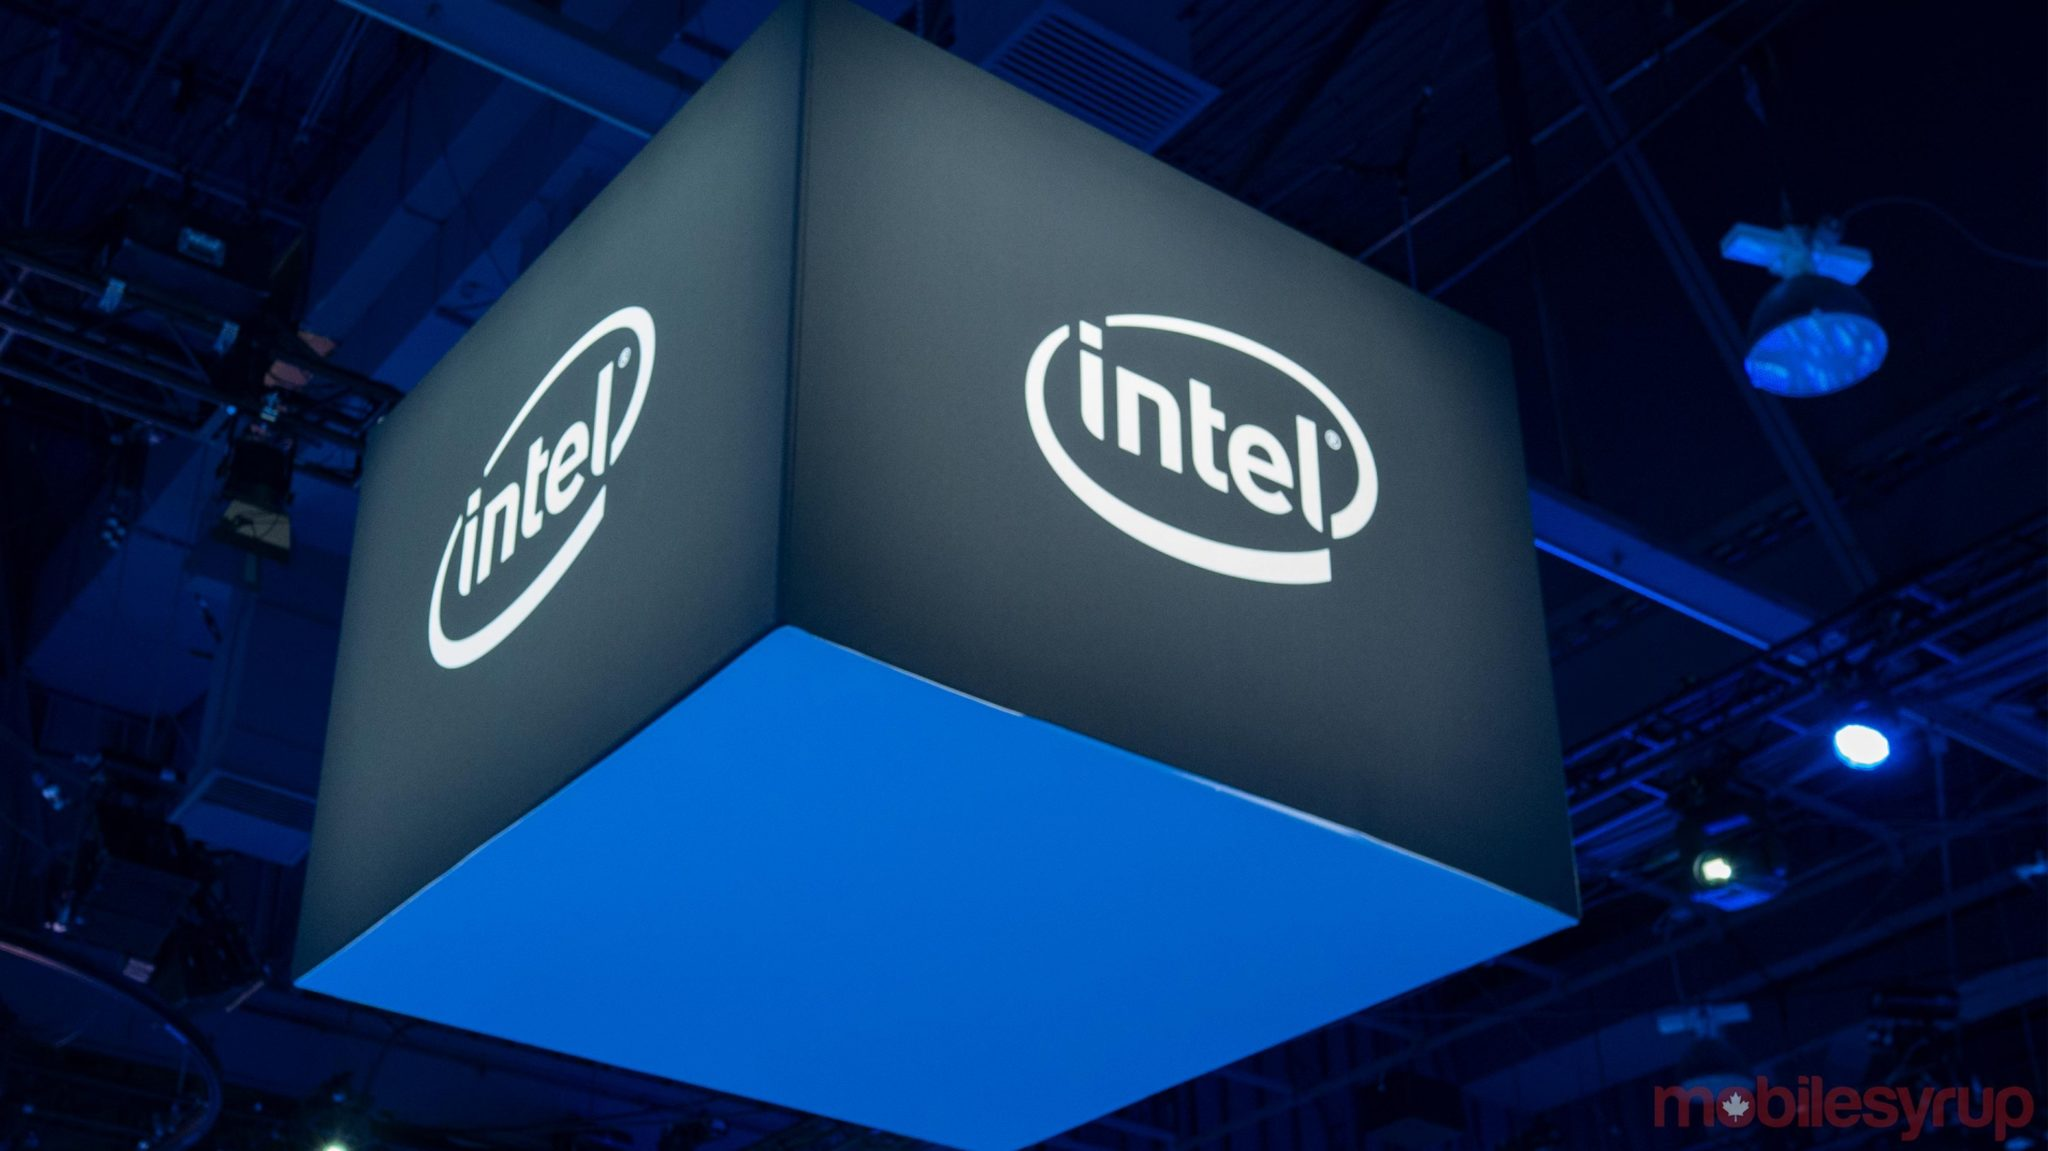 Intel announces new 11th Gen H-series CPUs for mobile gaming